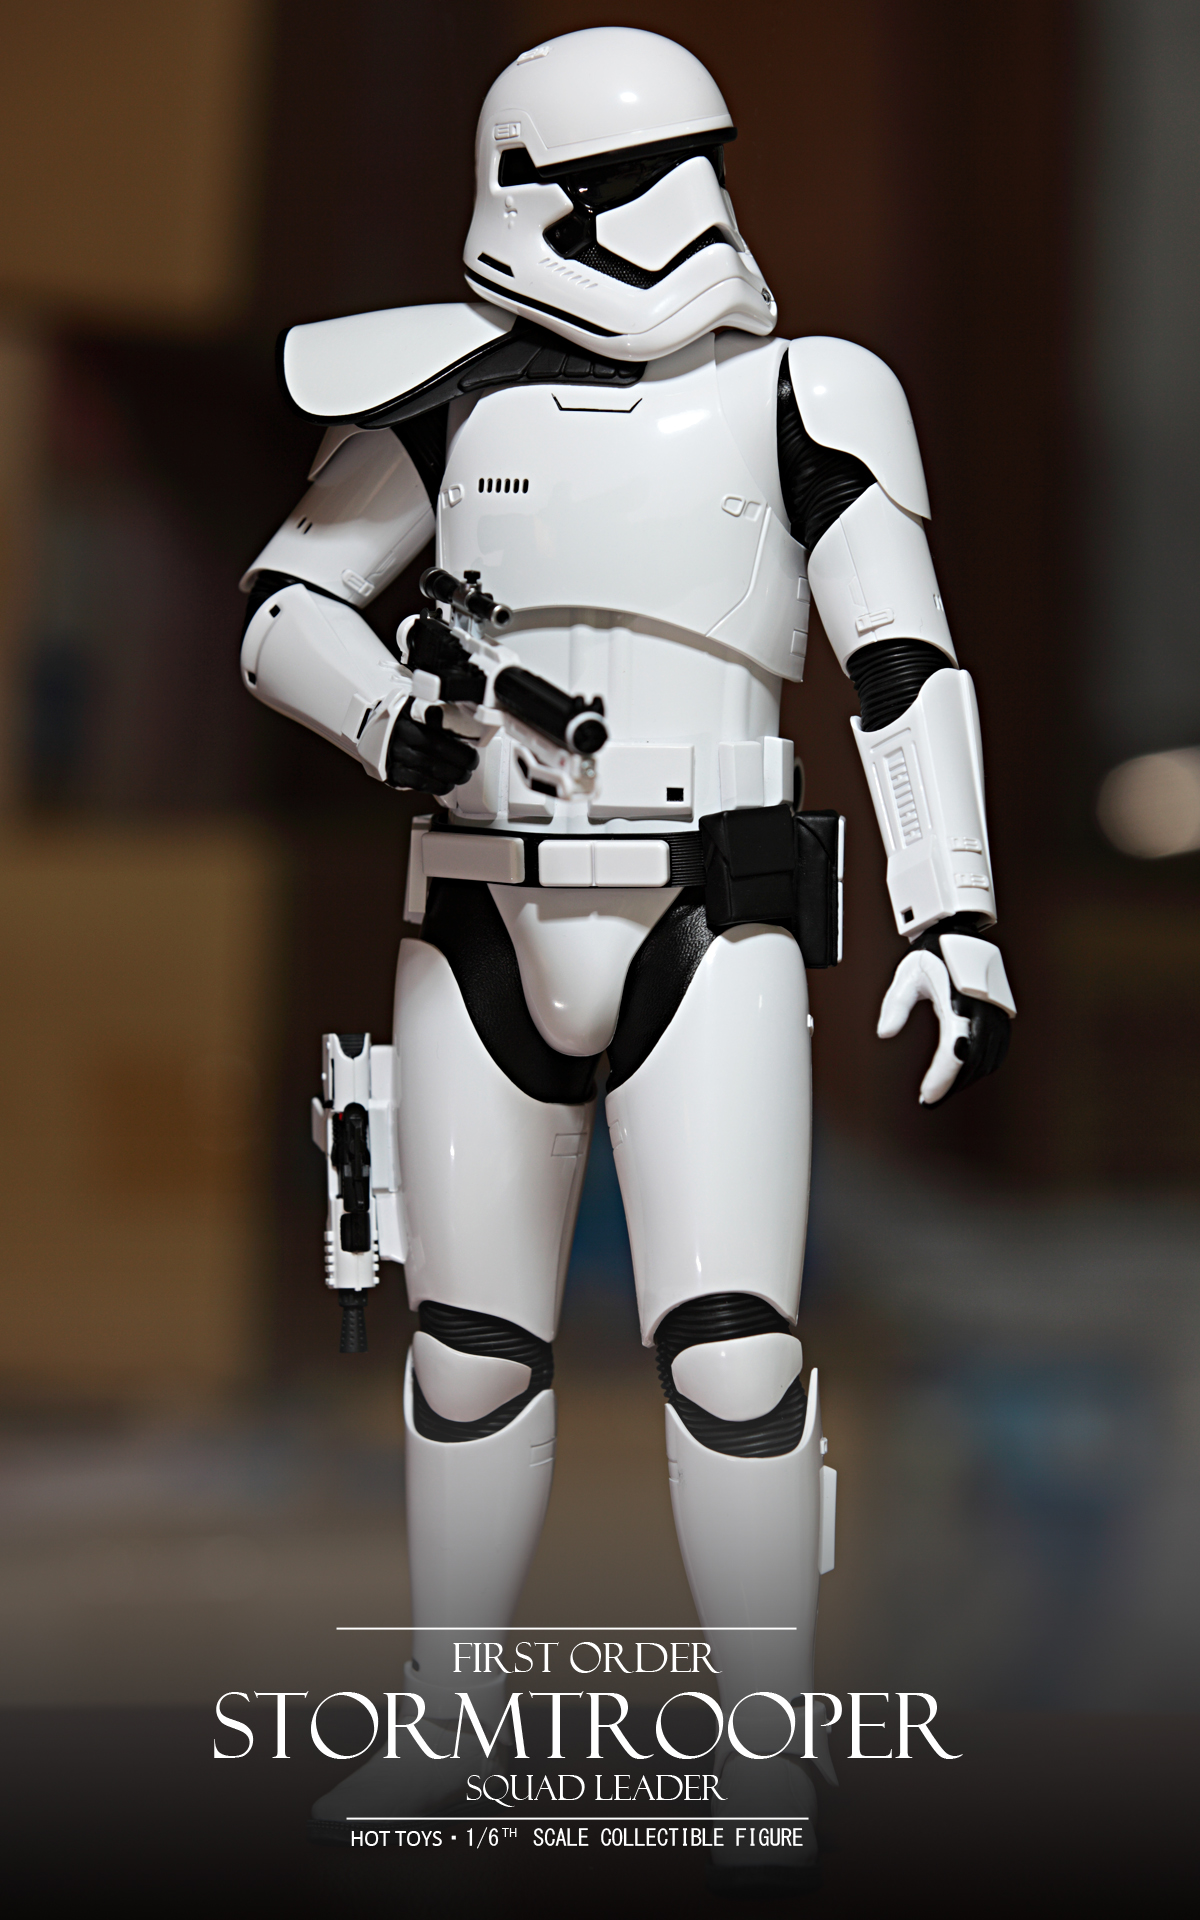 hottoys-star-wars-the-force-awakens-first-order-stormtrooper-Squad-Leader-picture01hottoys-star-wars-the-force-awakens-first-order-stormtrooper-Squad-Leader-picture01